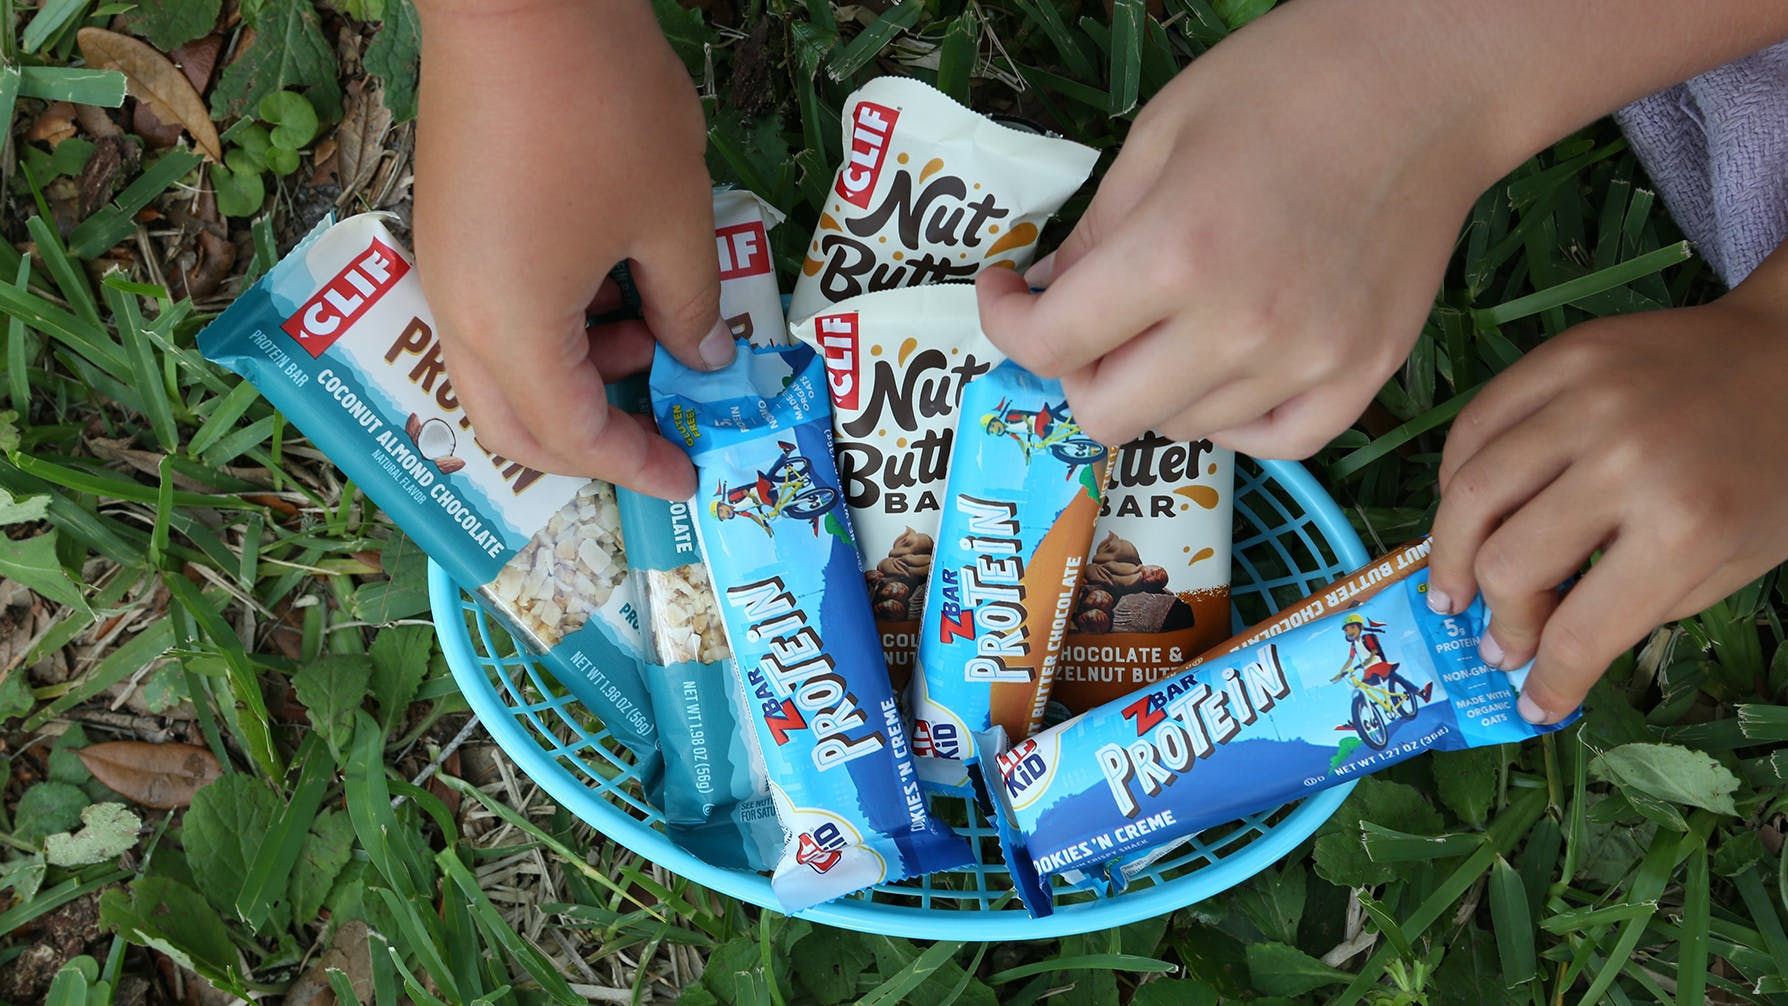 Basket of Zbars and Nut Butter Bars